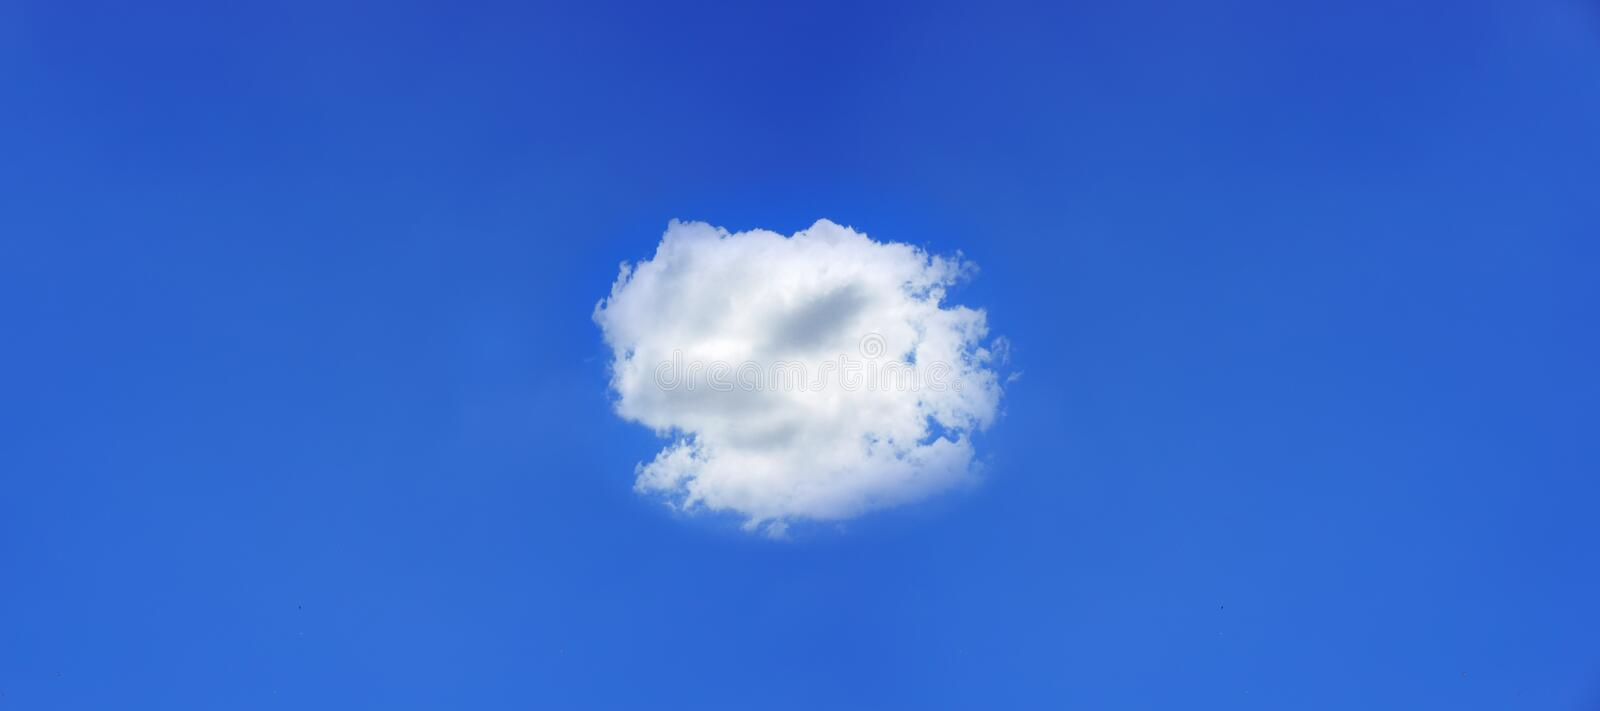 Sky, Cloud, Blue, Daytime stock photo